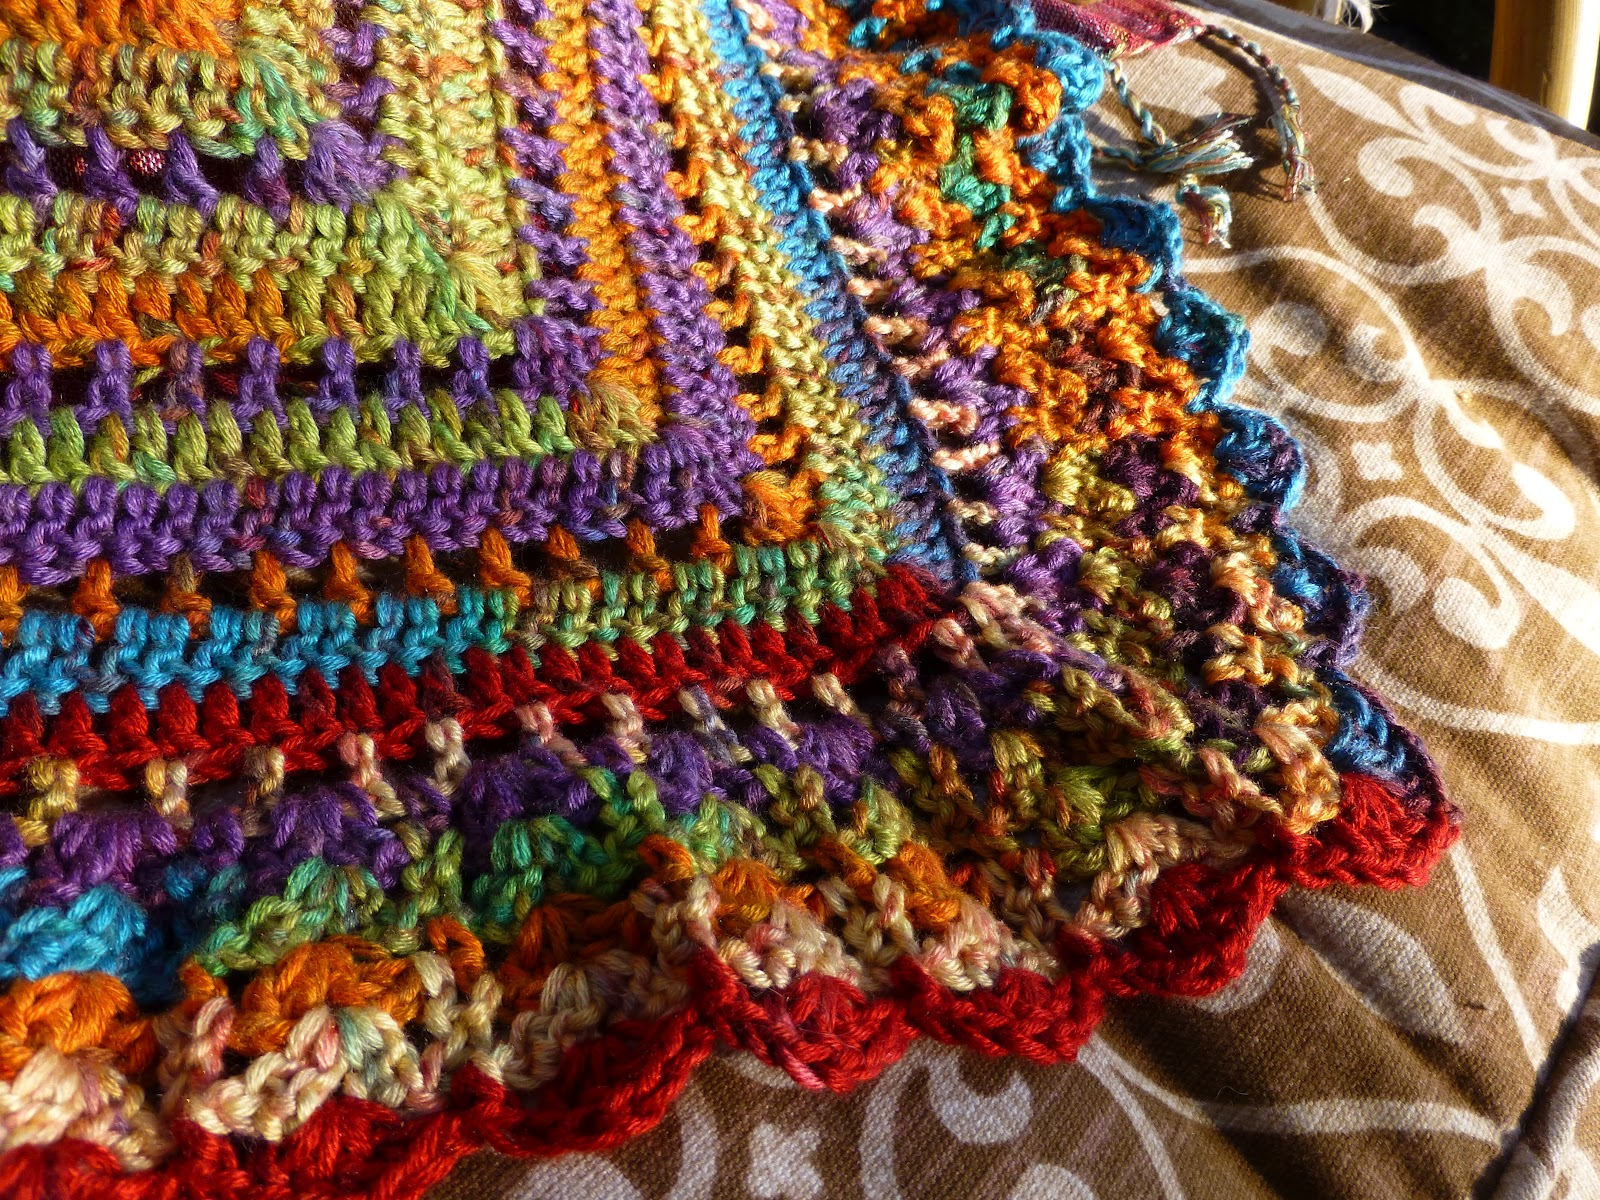 yarn art color garden : And My Friend Marita Brought Me This Wonderful Scarf From Cairo It S Hand Loomed Of Egyptian Cotton And The Fiber Is Just Luminous